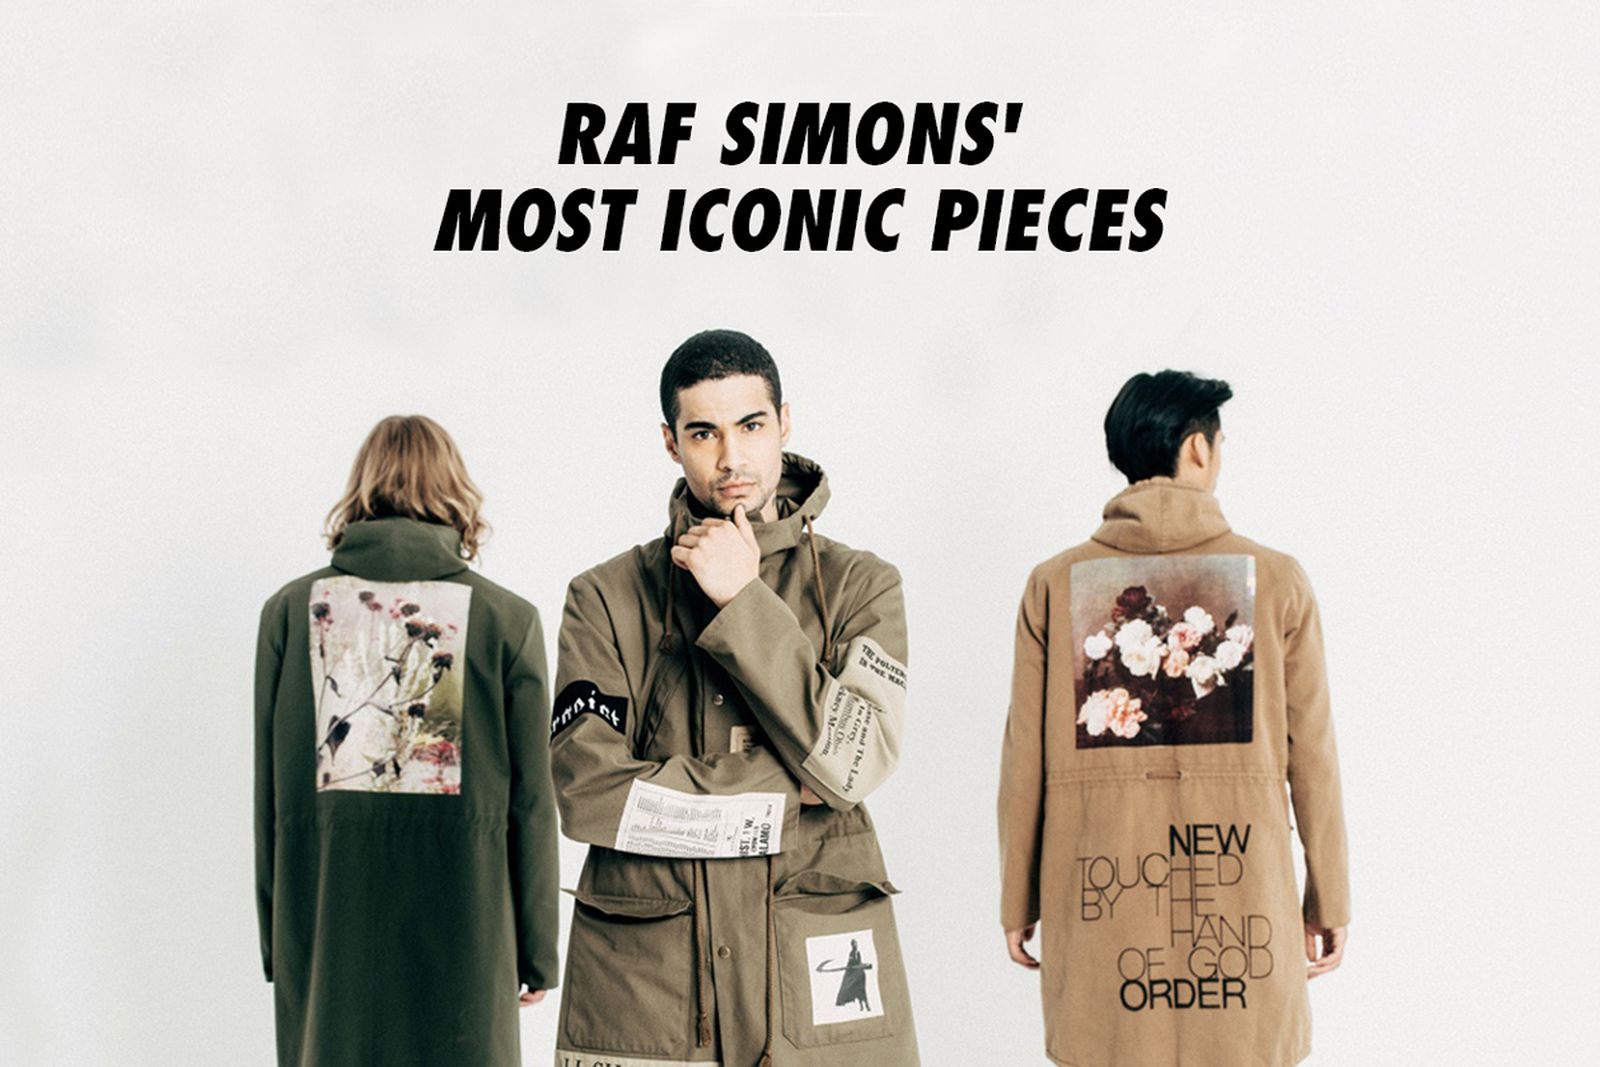 raf-simons-most-iconic-pieces-main